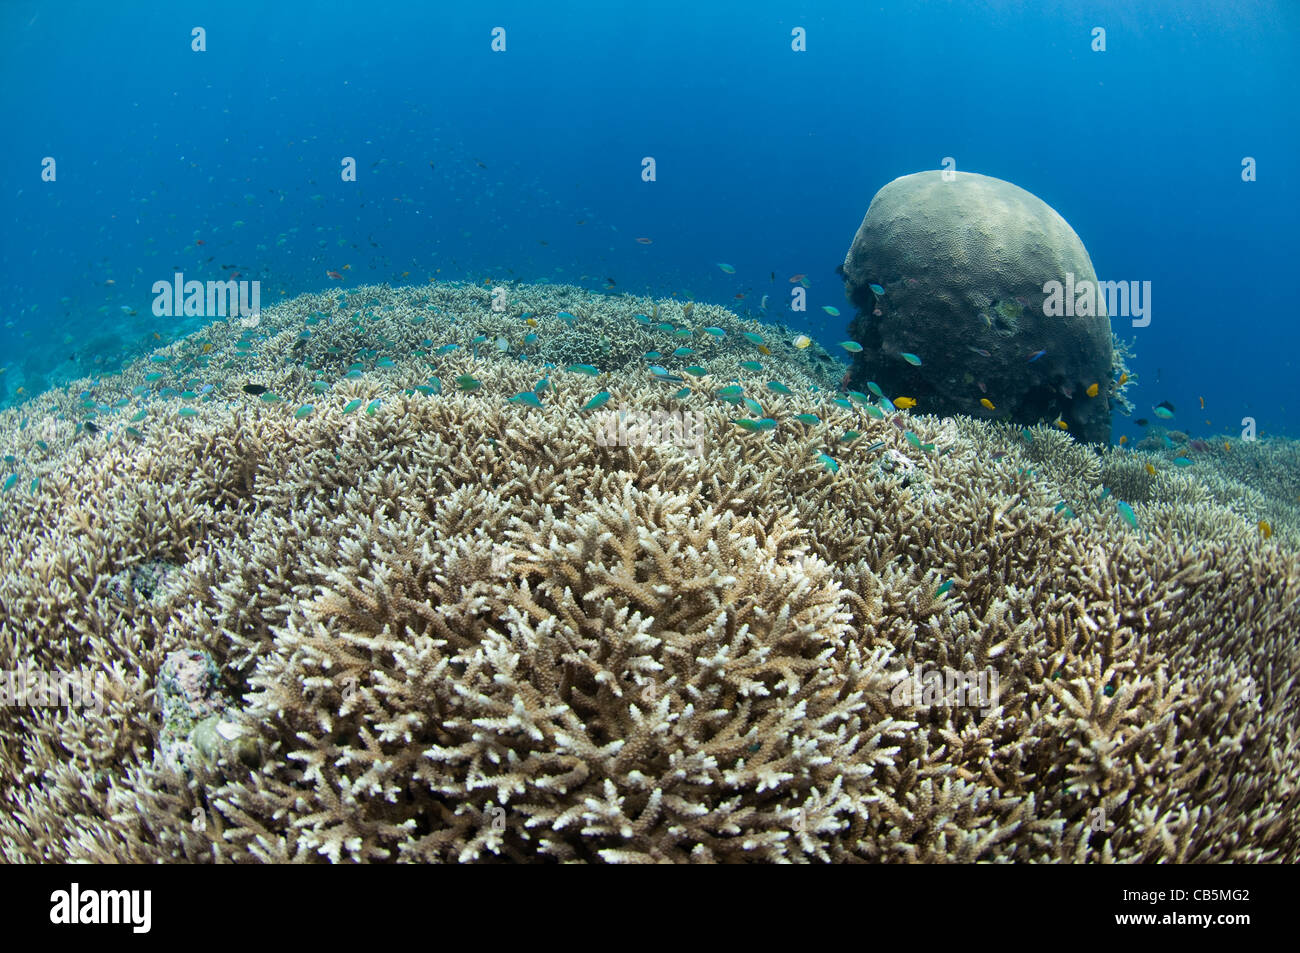 Hard coral garden, with a variety of table, leather, and staghorn corals, Lembeh Strait, North Sulawesi, Indonesia - Stock Image